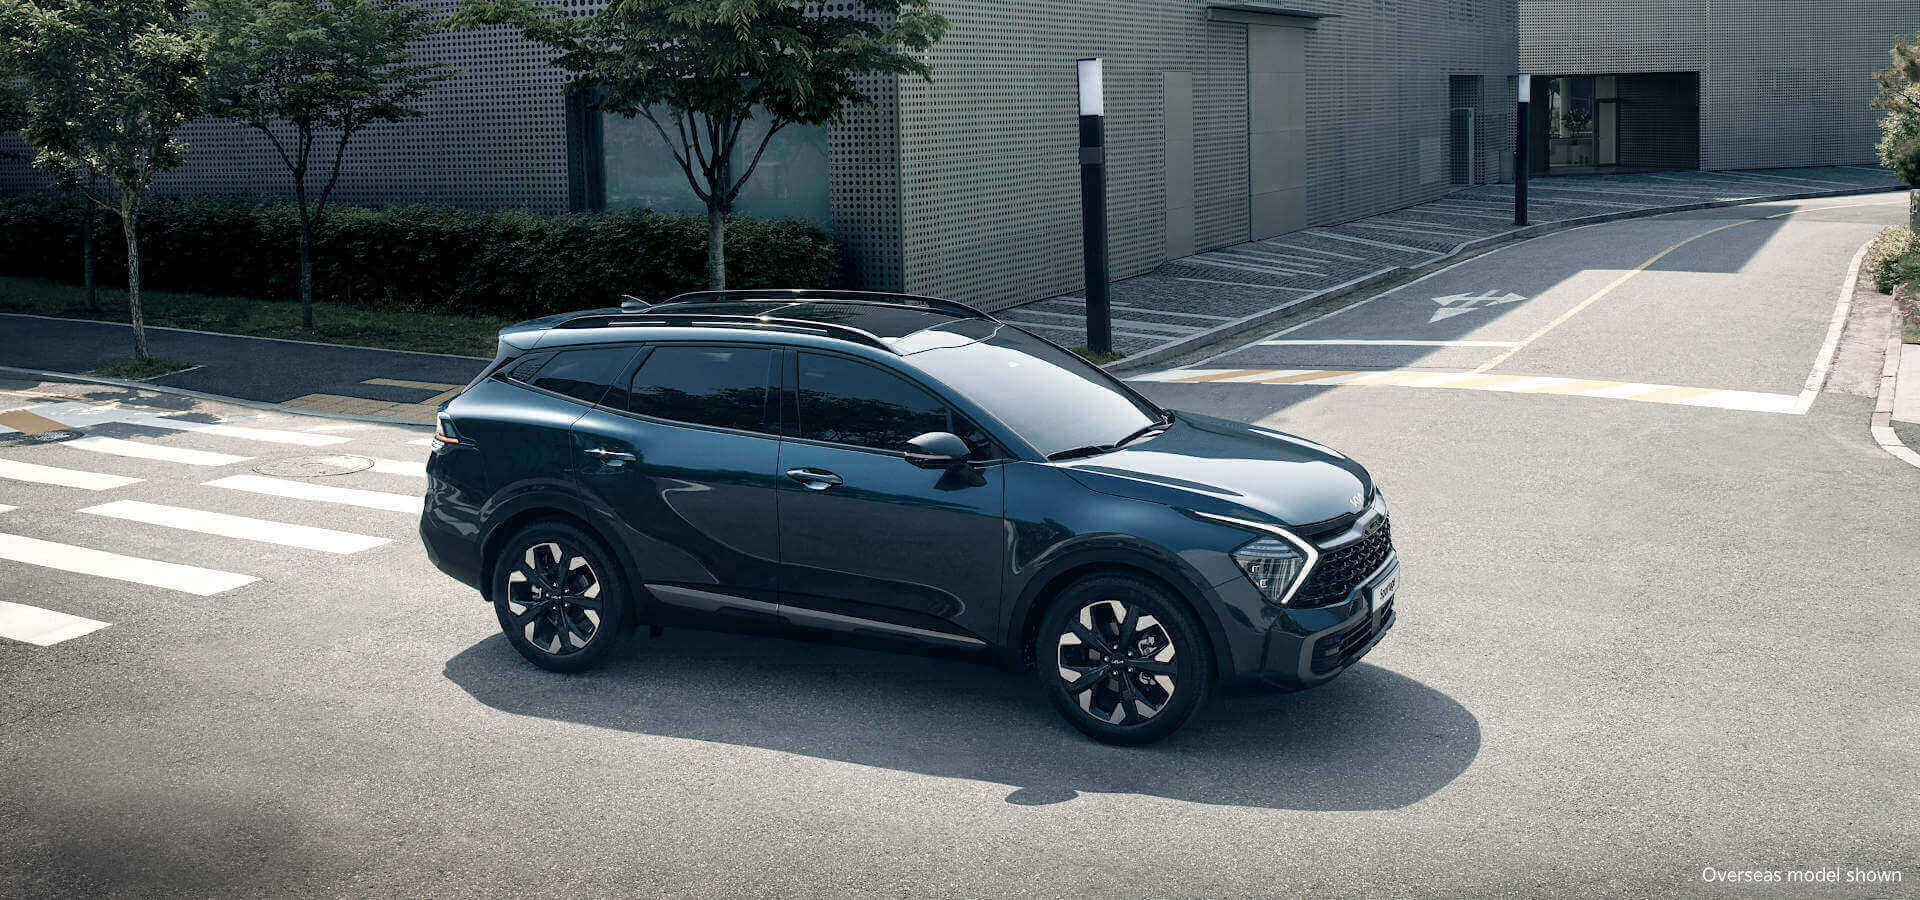 All New Sportage Image